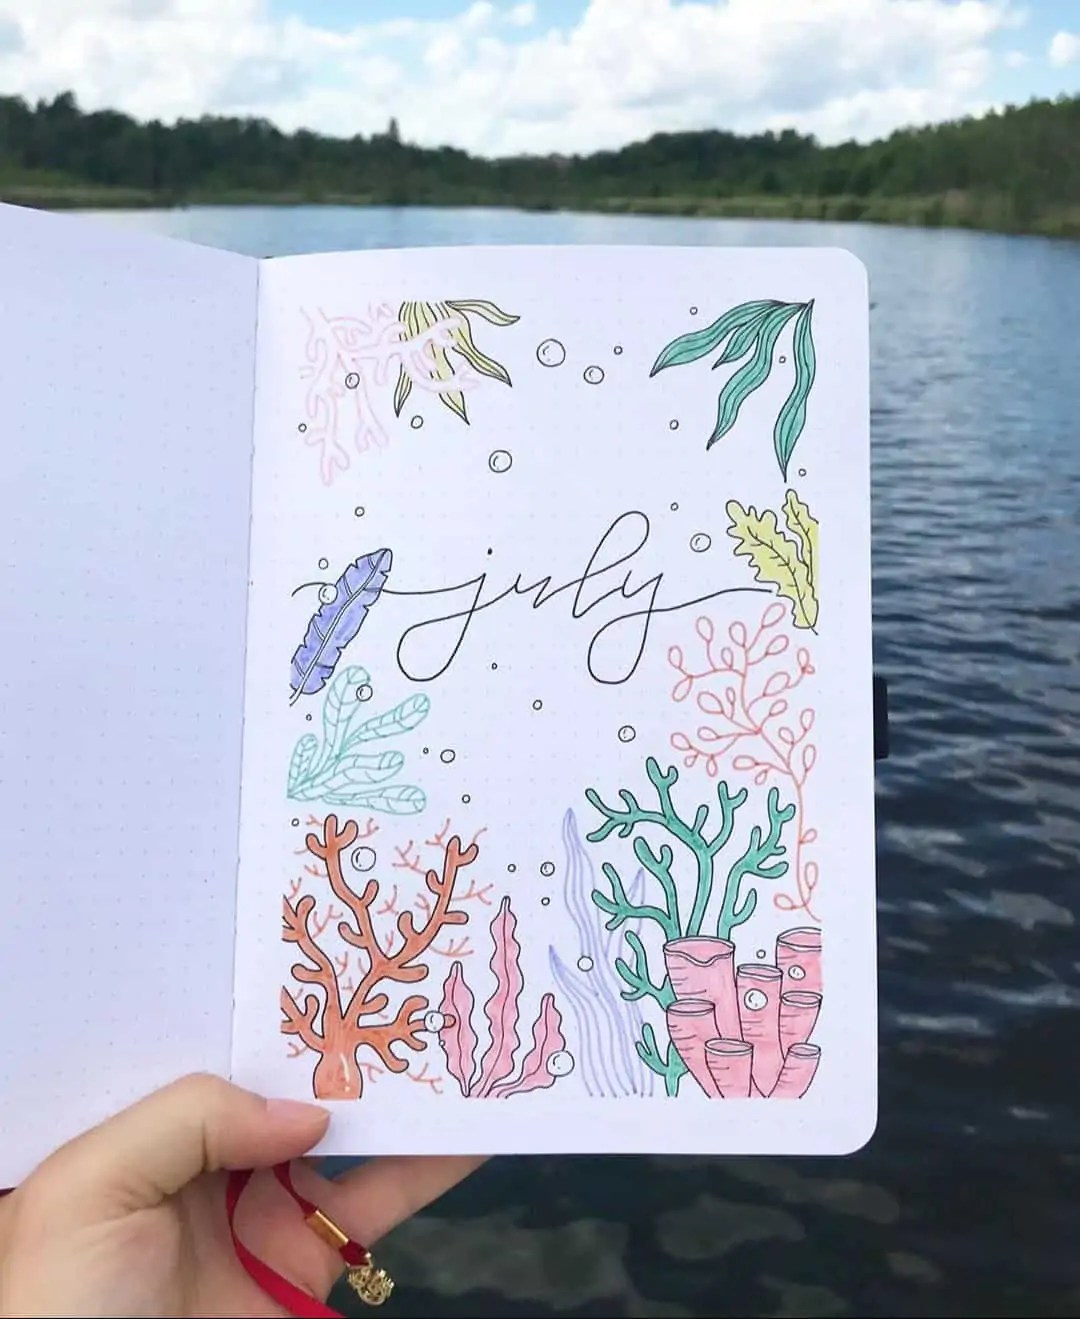 100+ Bullet Journal Ideas that you have to see and copy today! 266